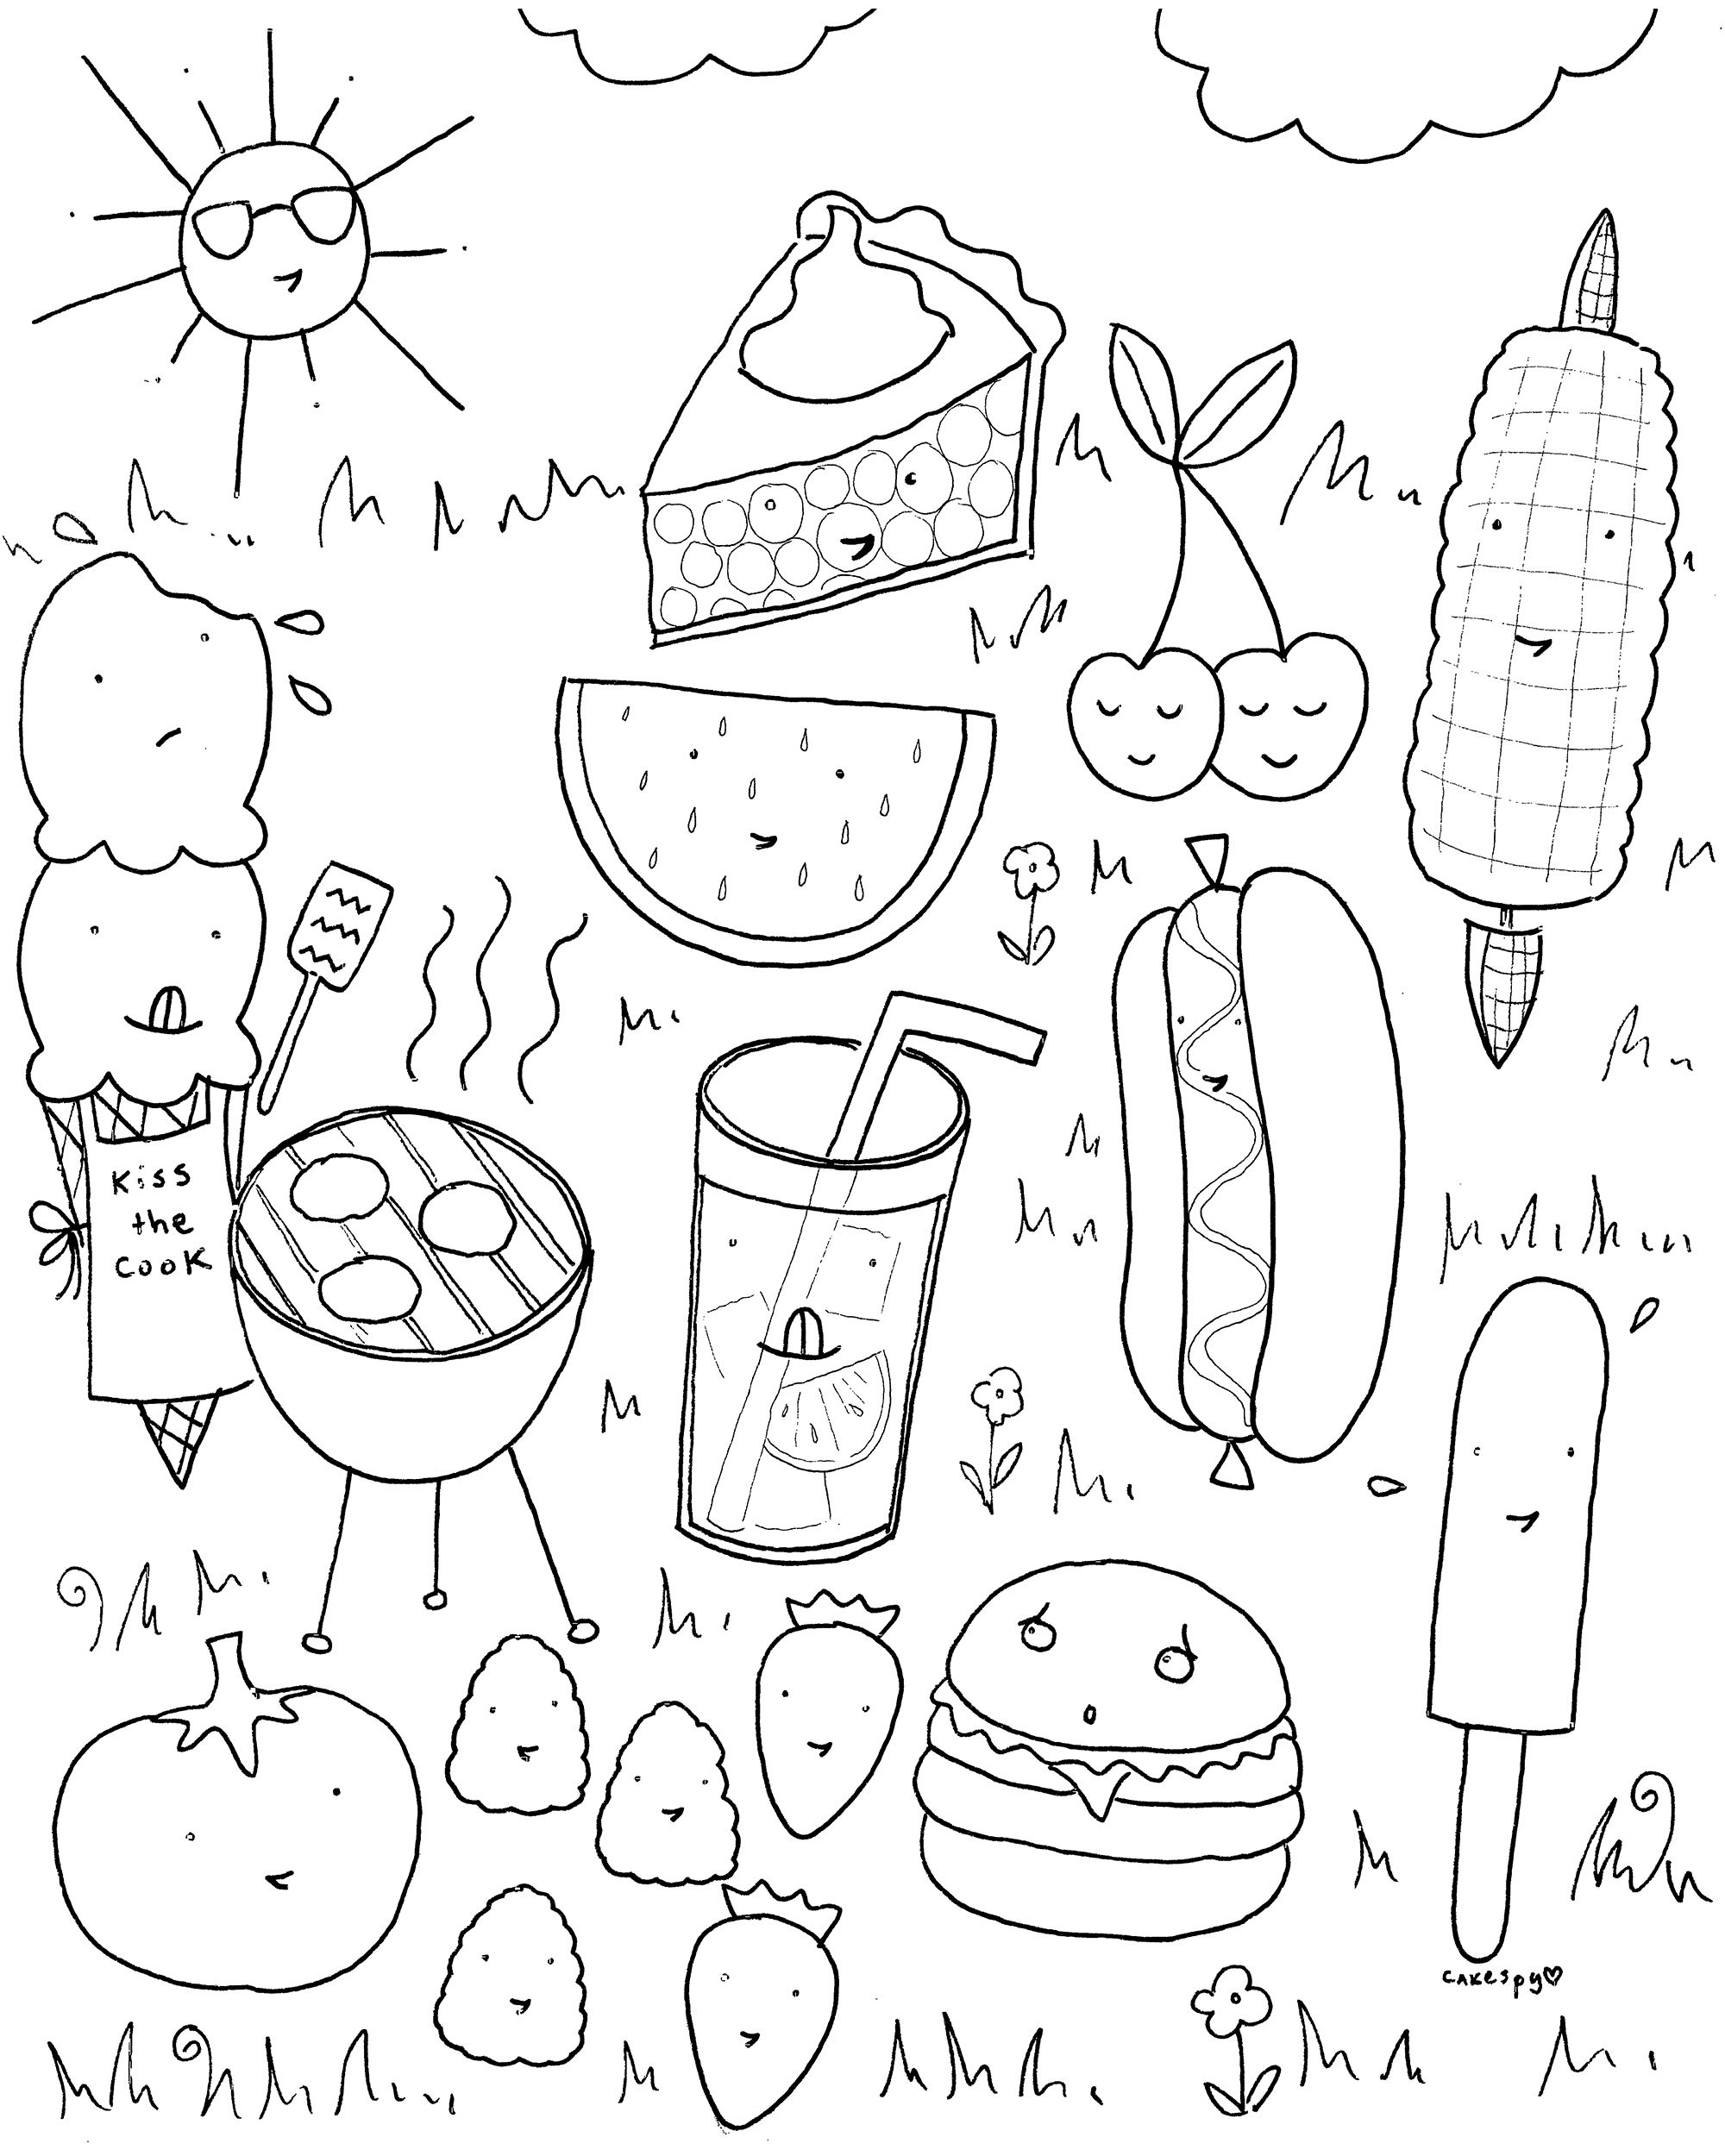 Coloring summer activities - Free Downloadable Summer Fun Coloring Book Pages